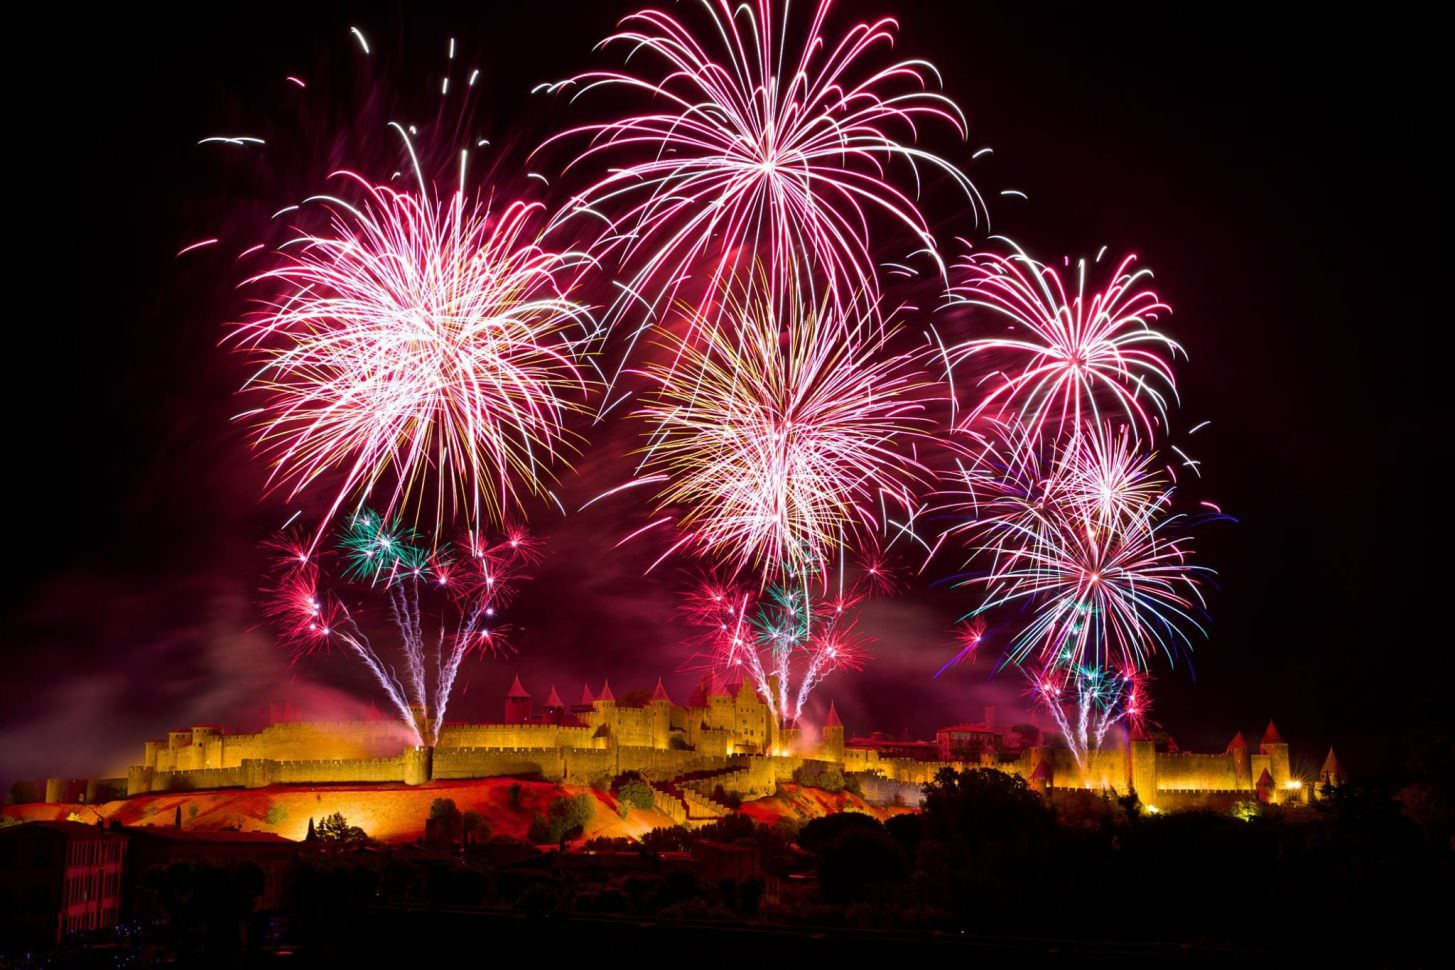 carcassonne, feu d'artifice, cité